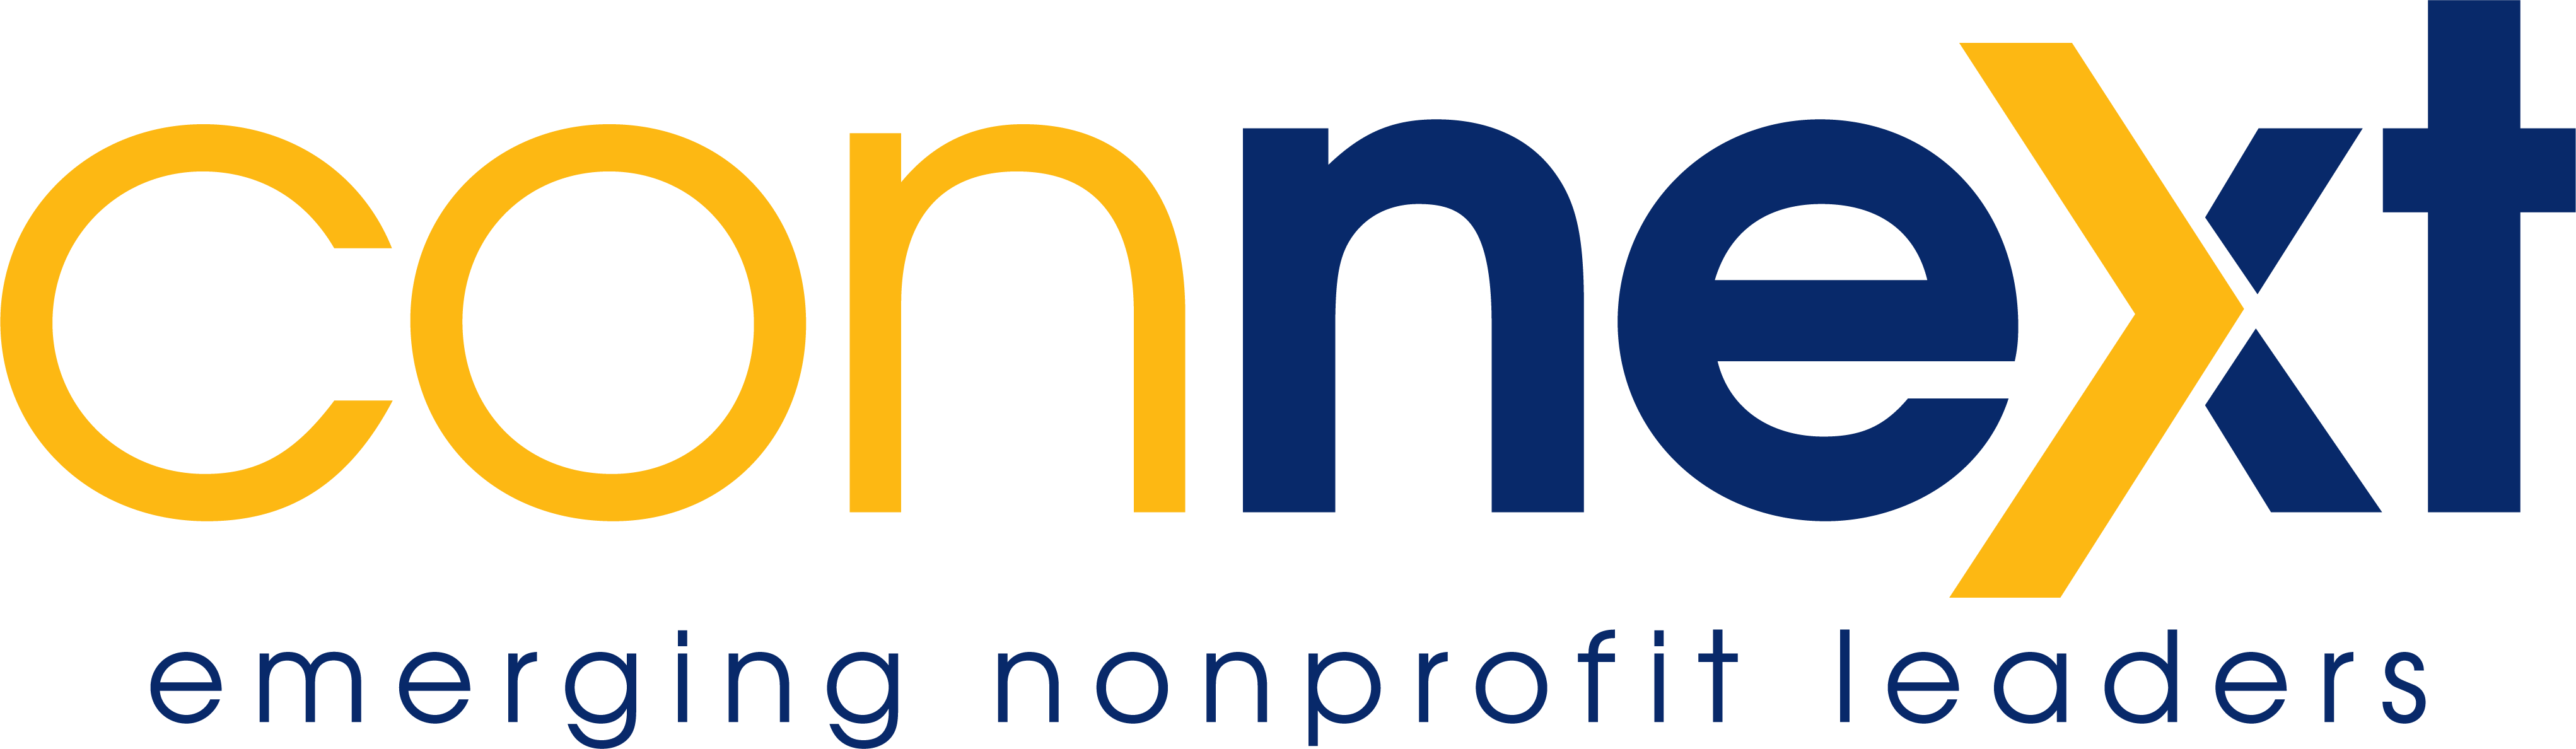 Connext Emerging Nonprofit Leaders Logo